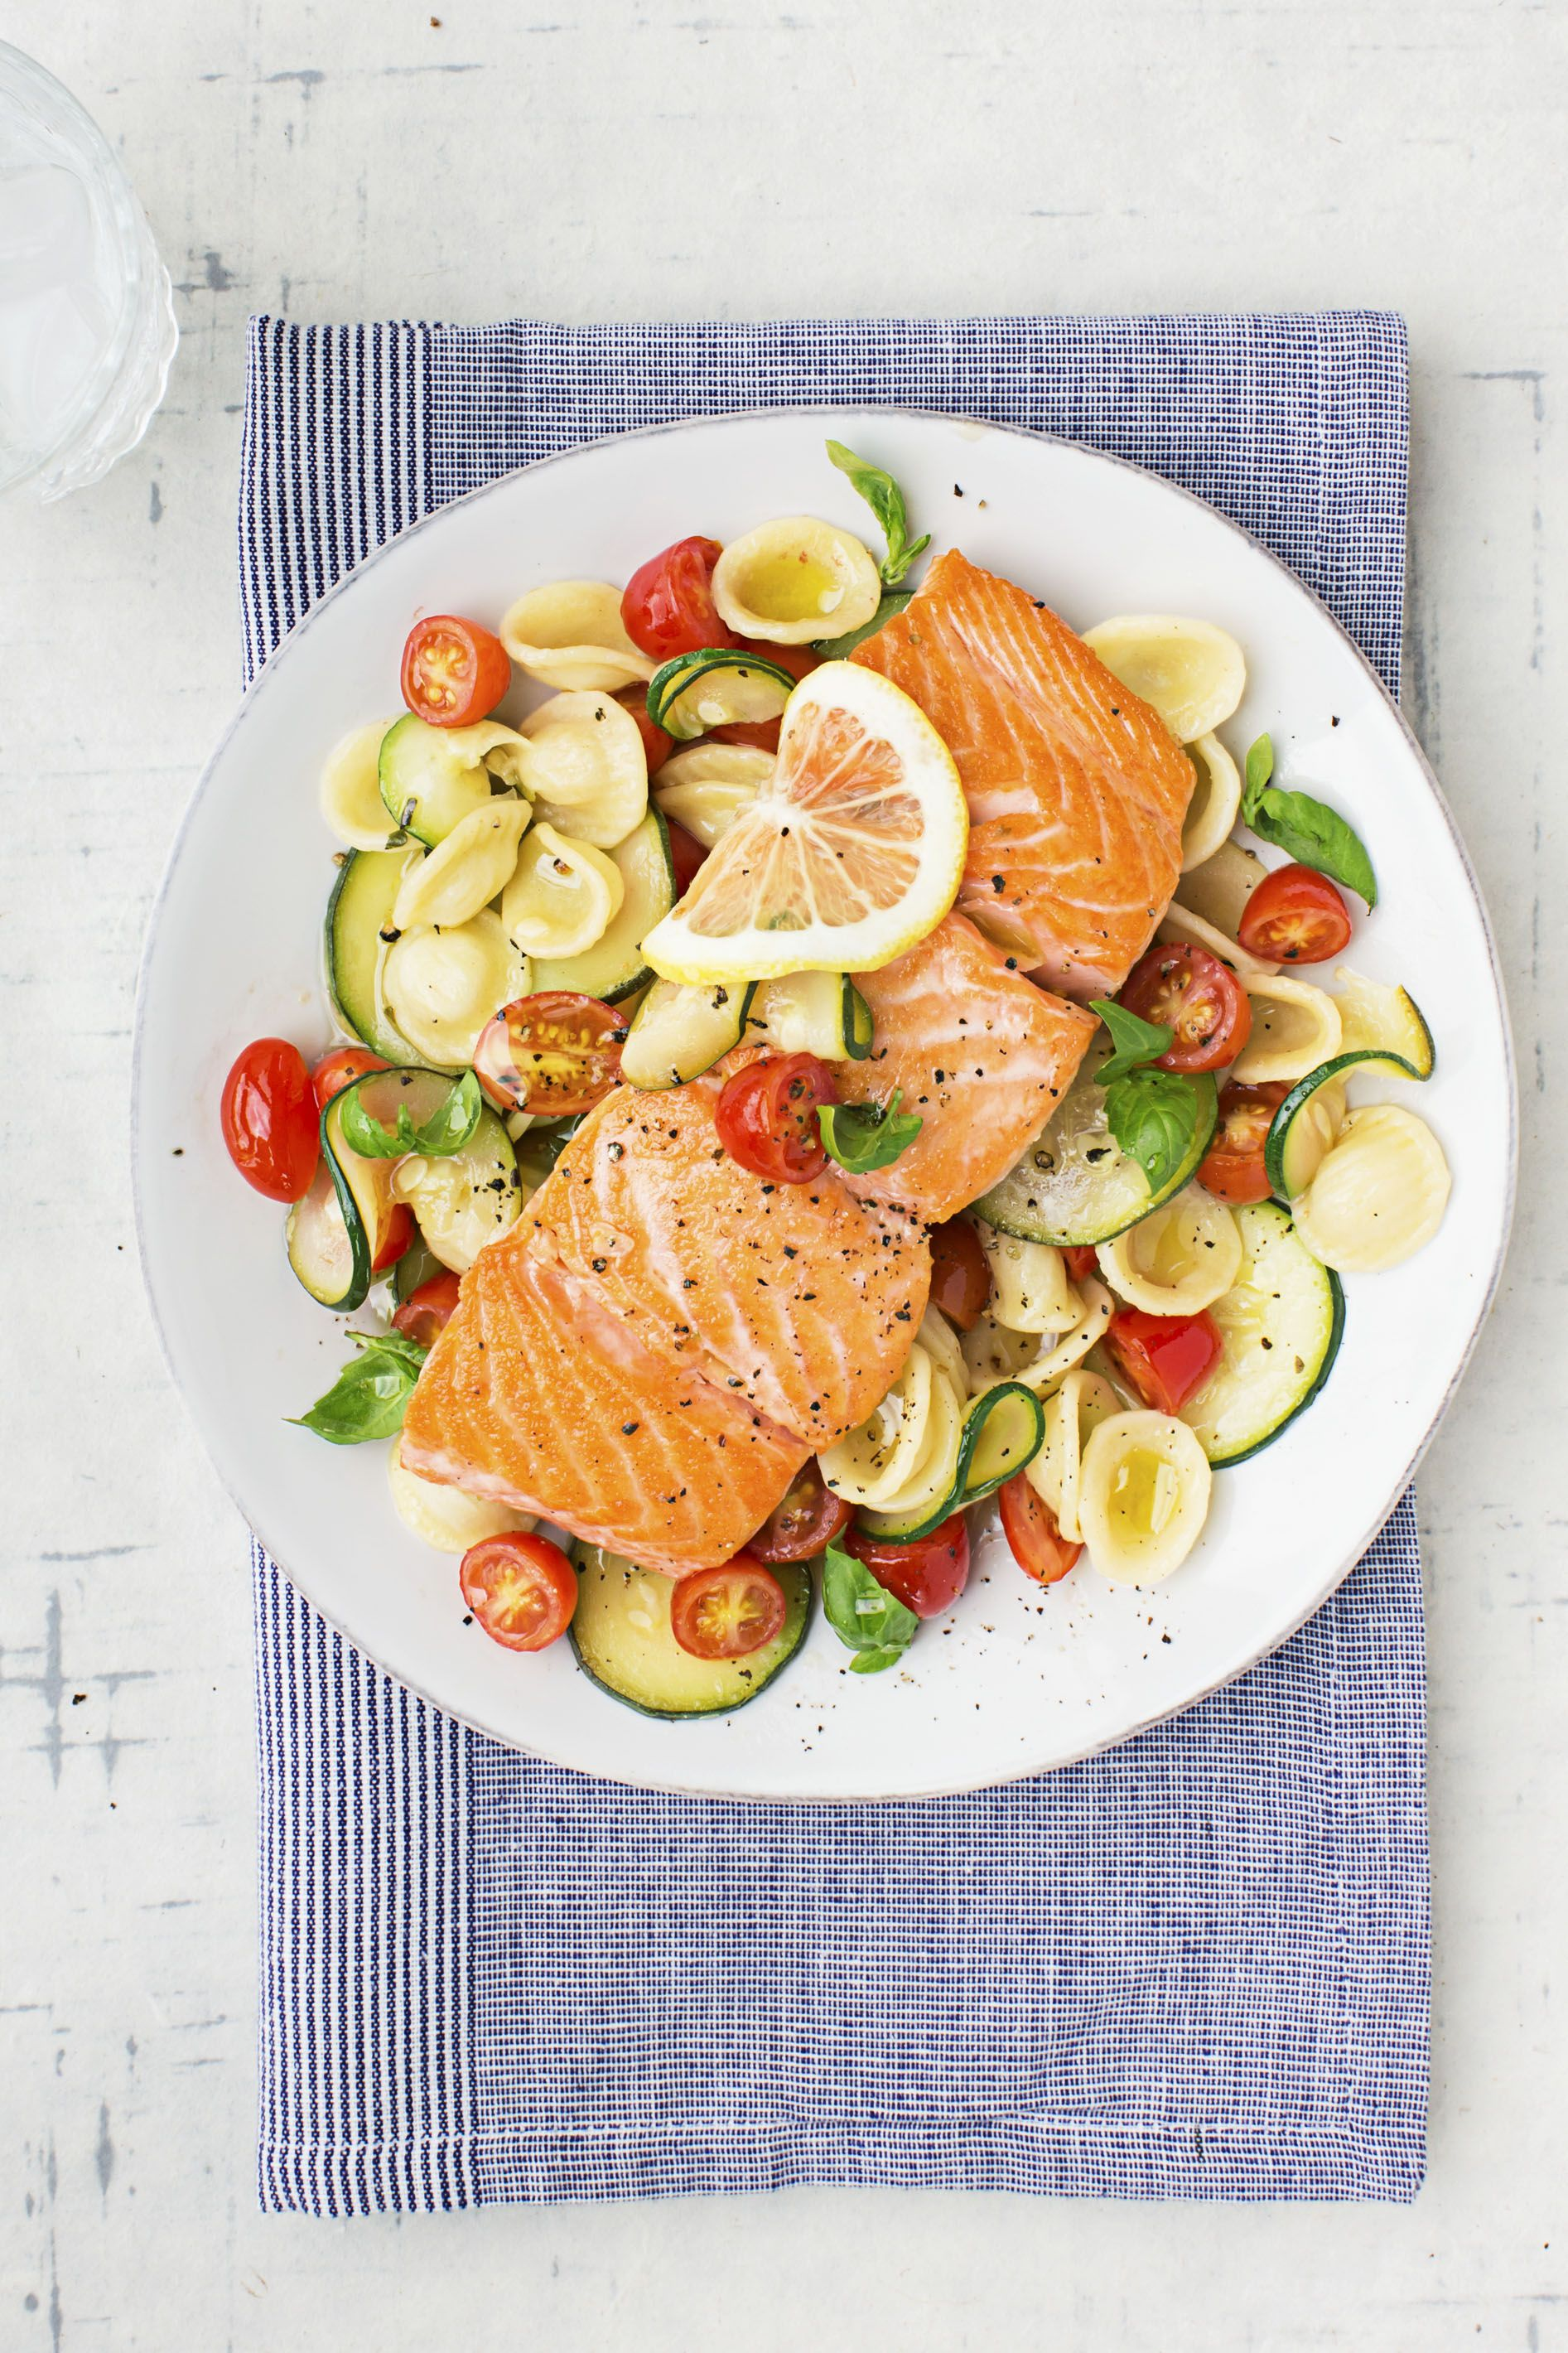 warm pasta salad with salmon